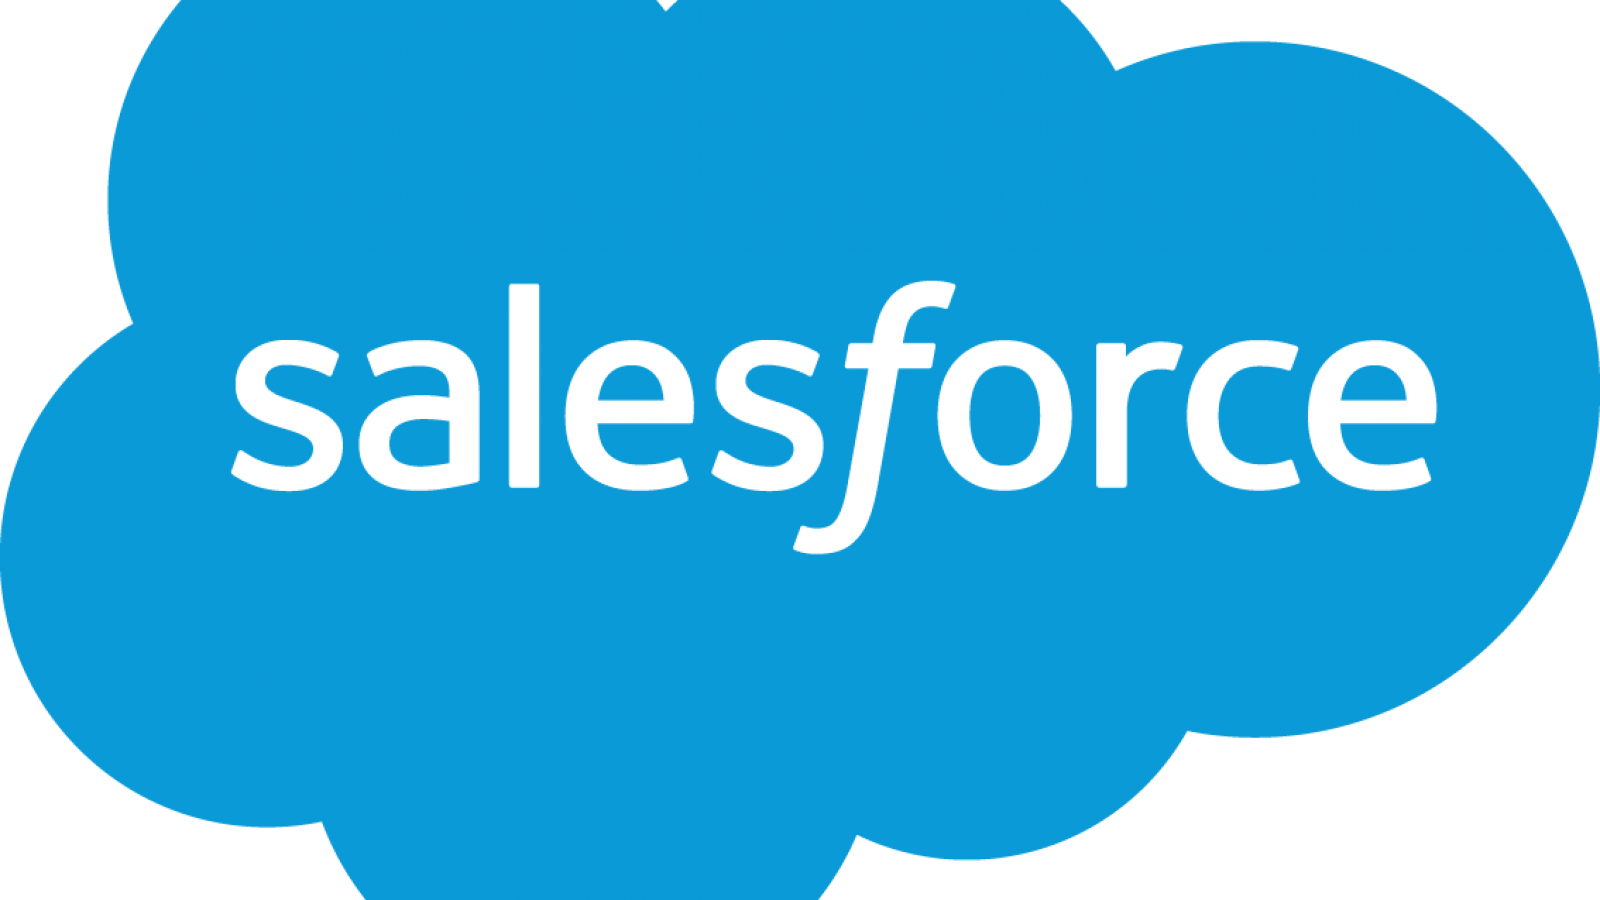 Salesforce Logo PNG - 35261